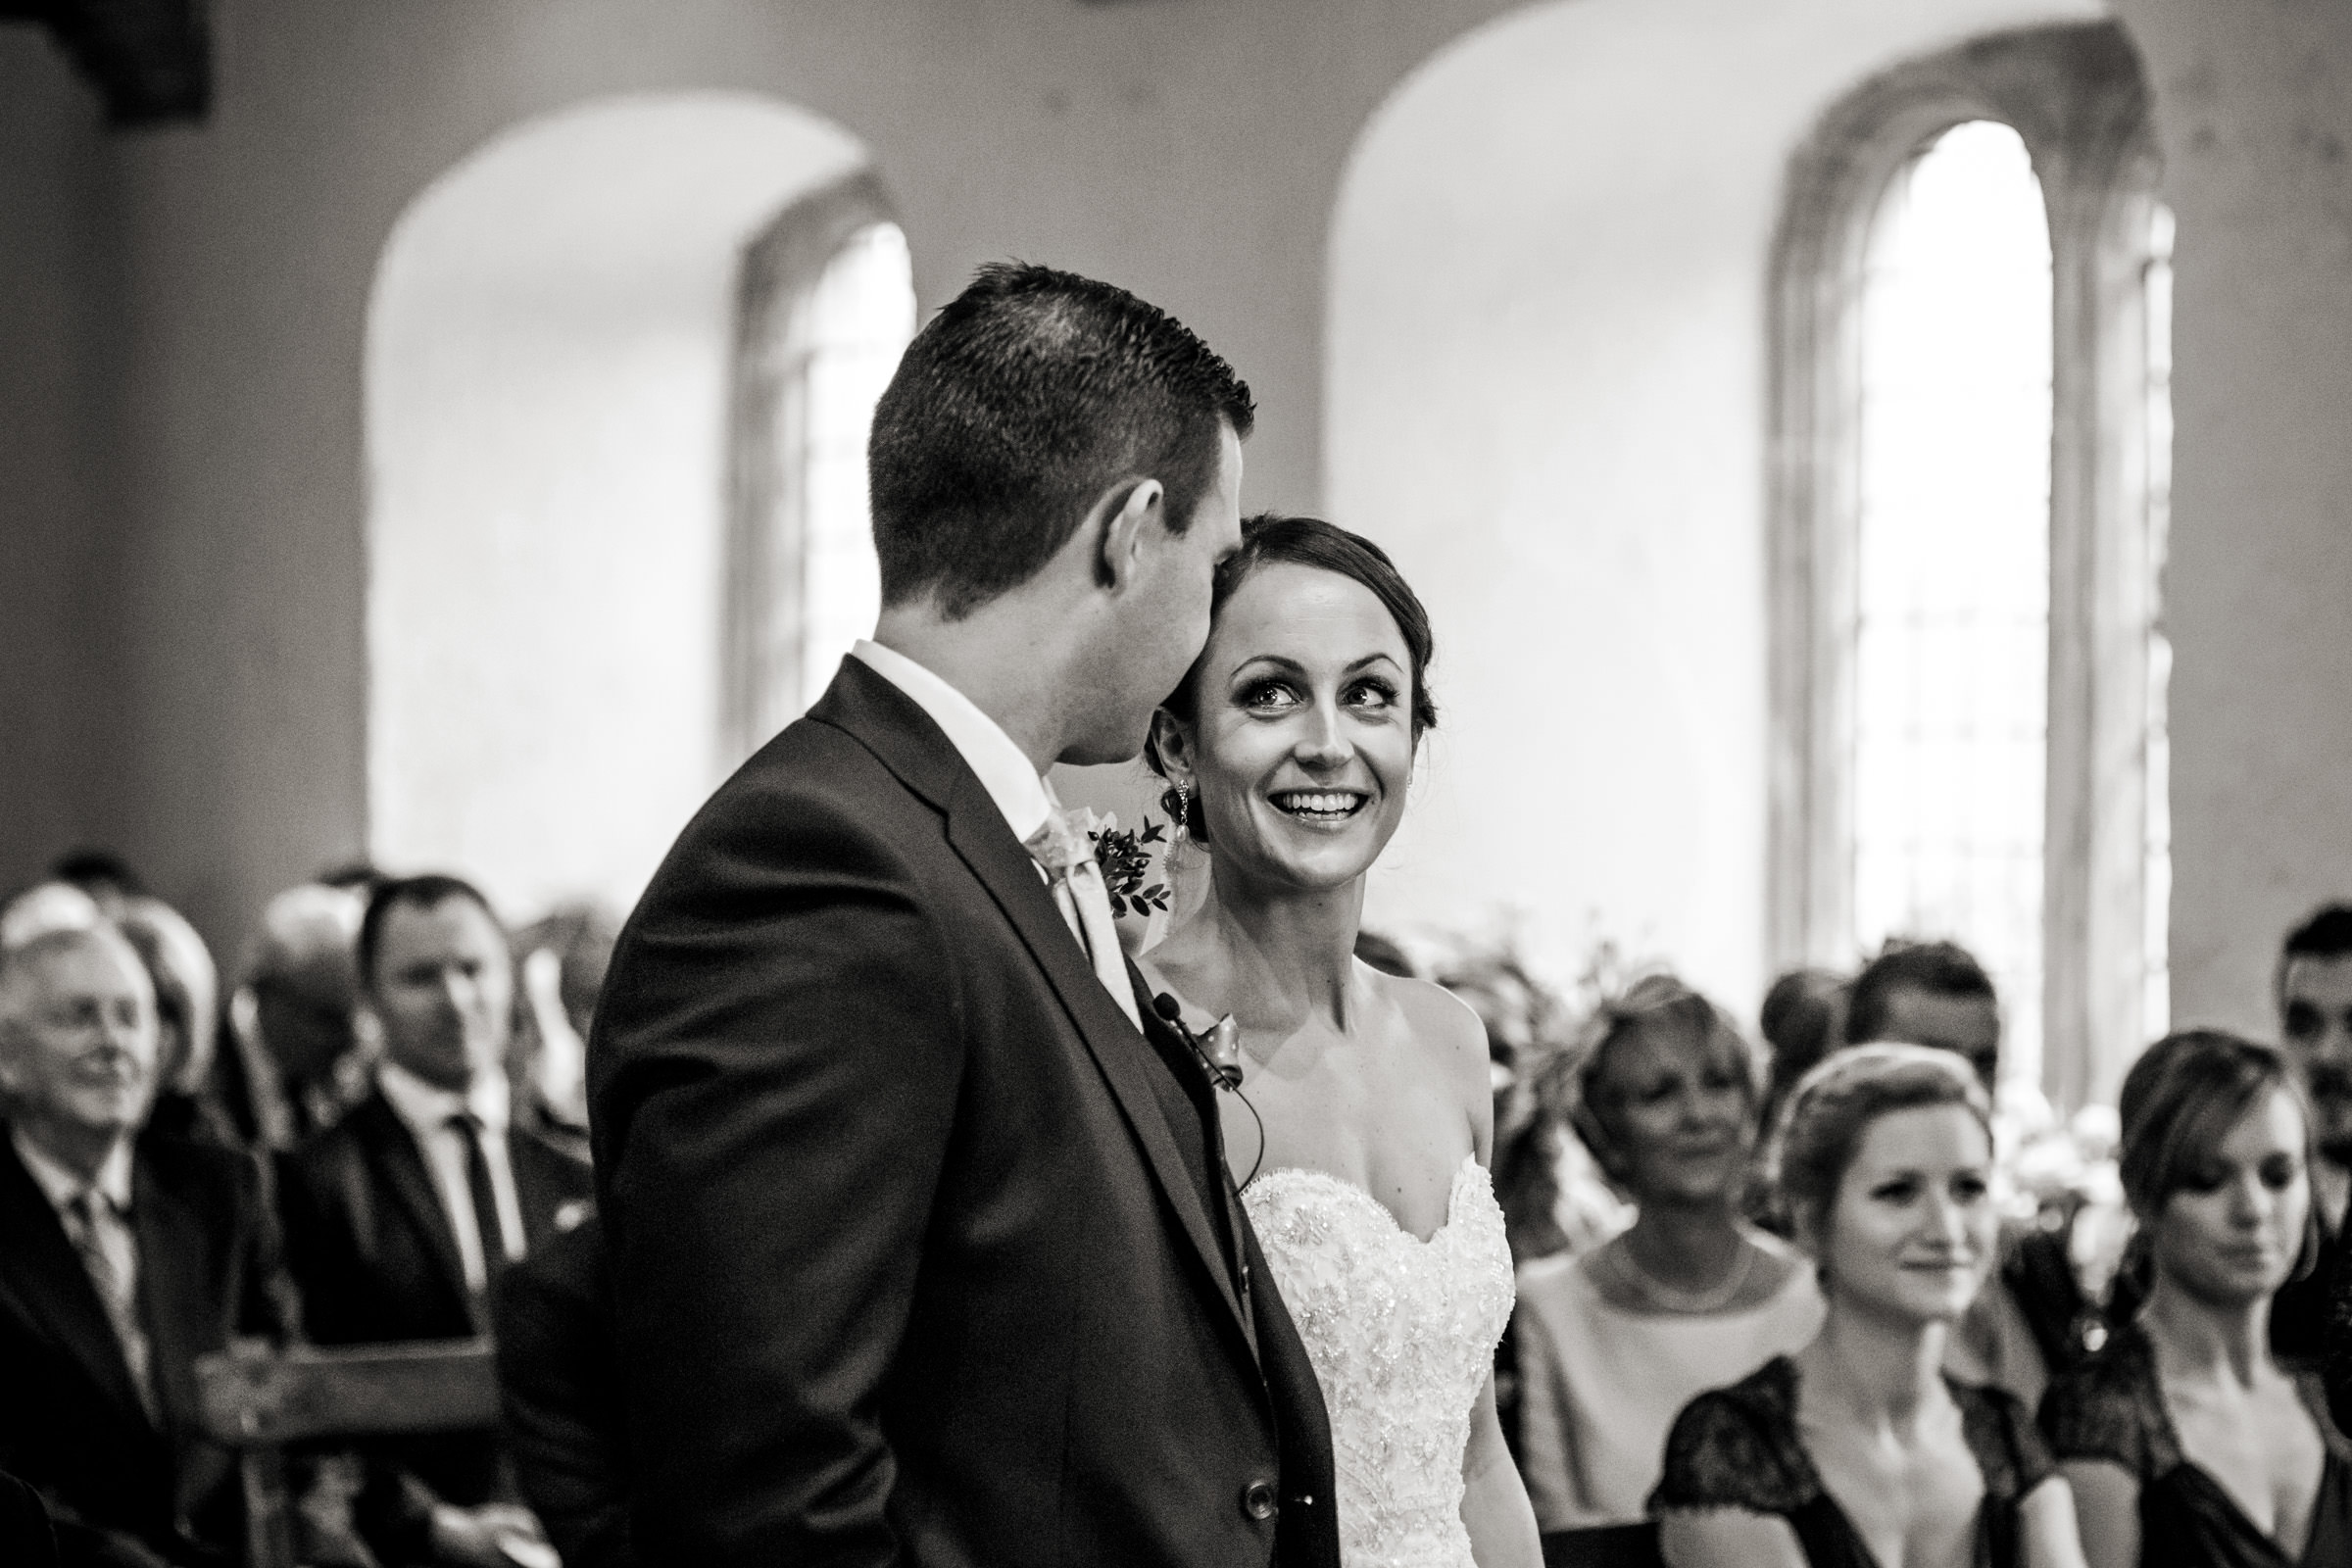 Wedding Photos At Brympton House In Somerset 015.jpg